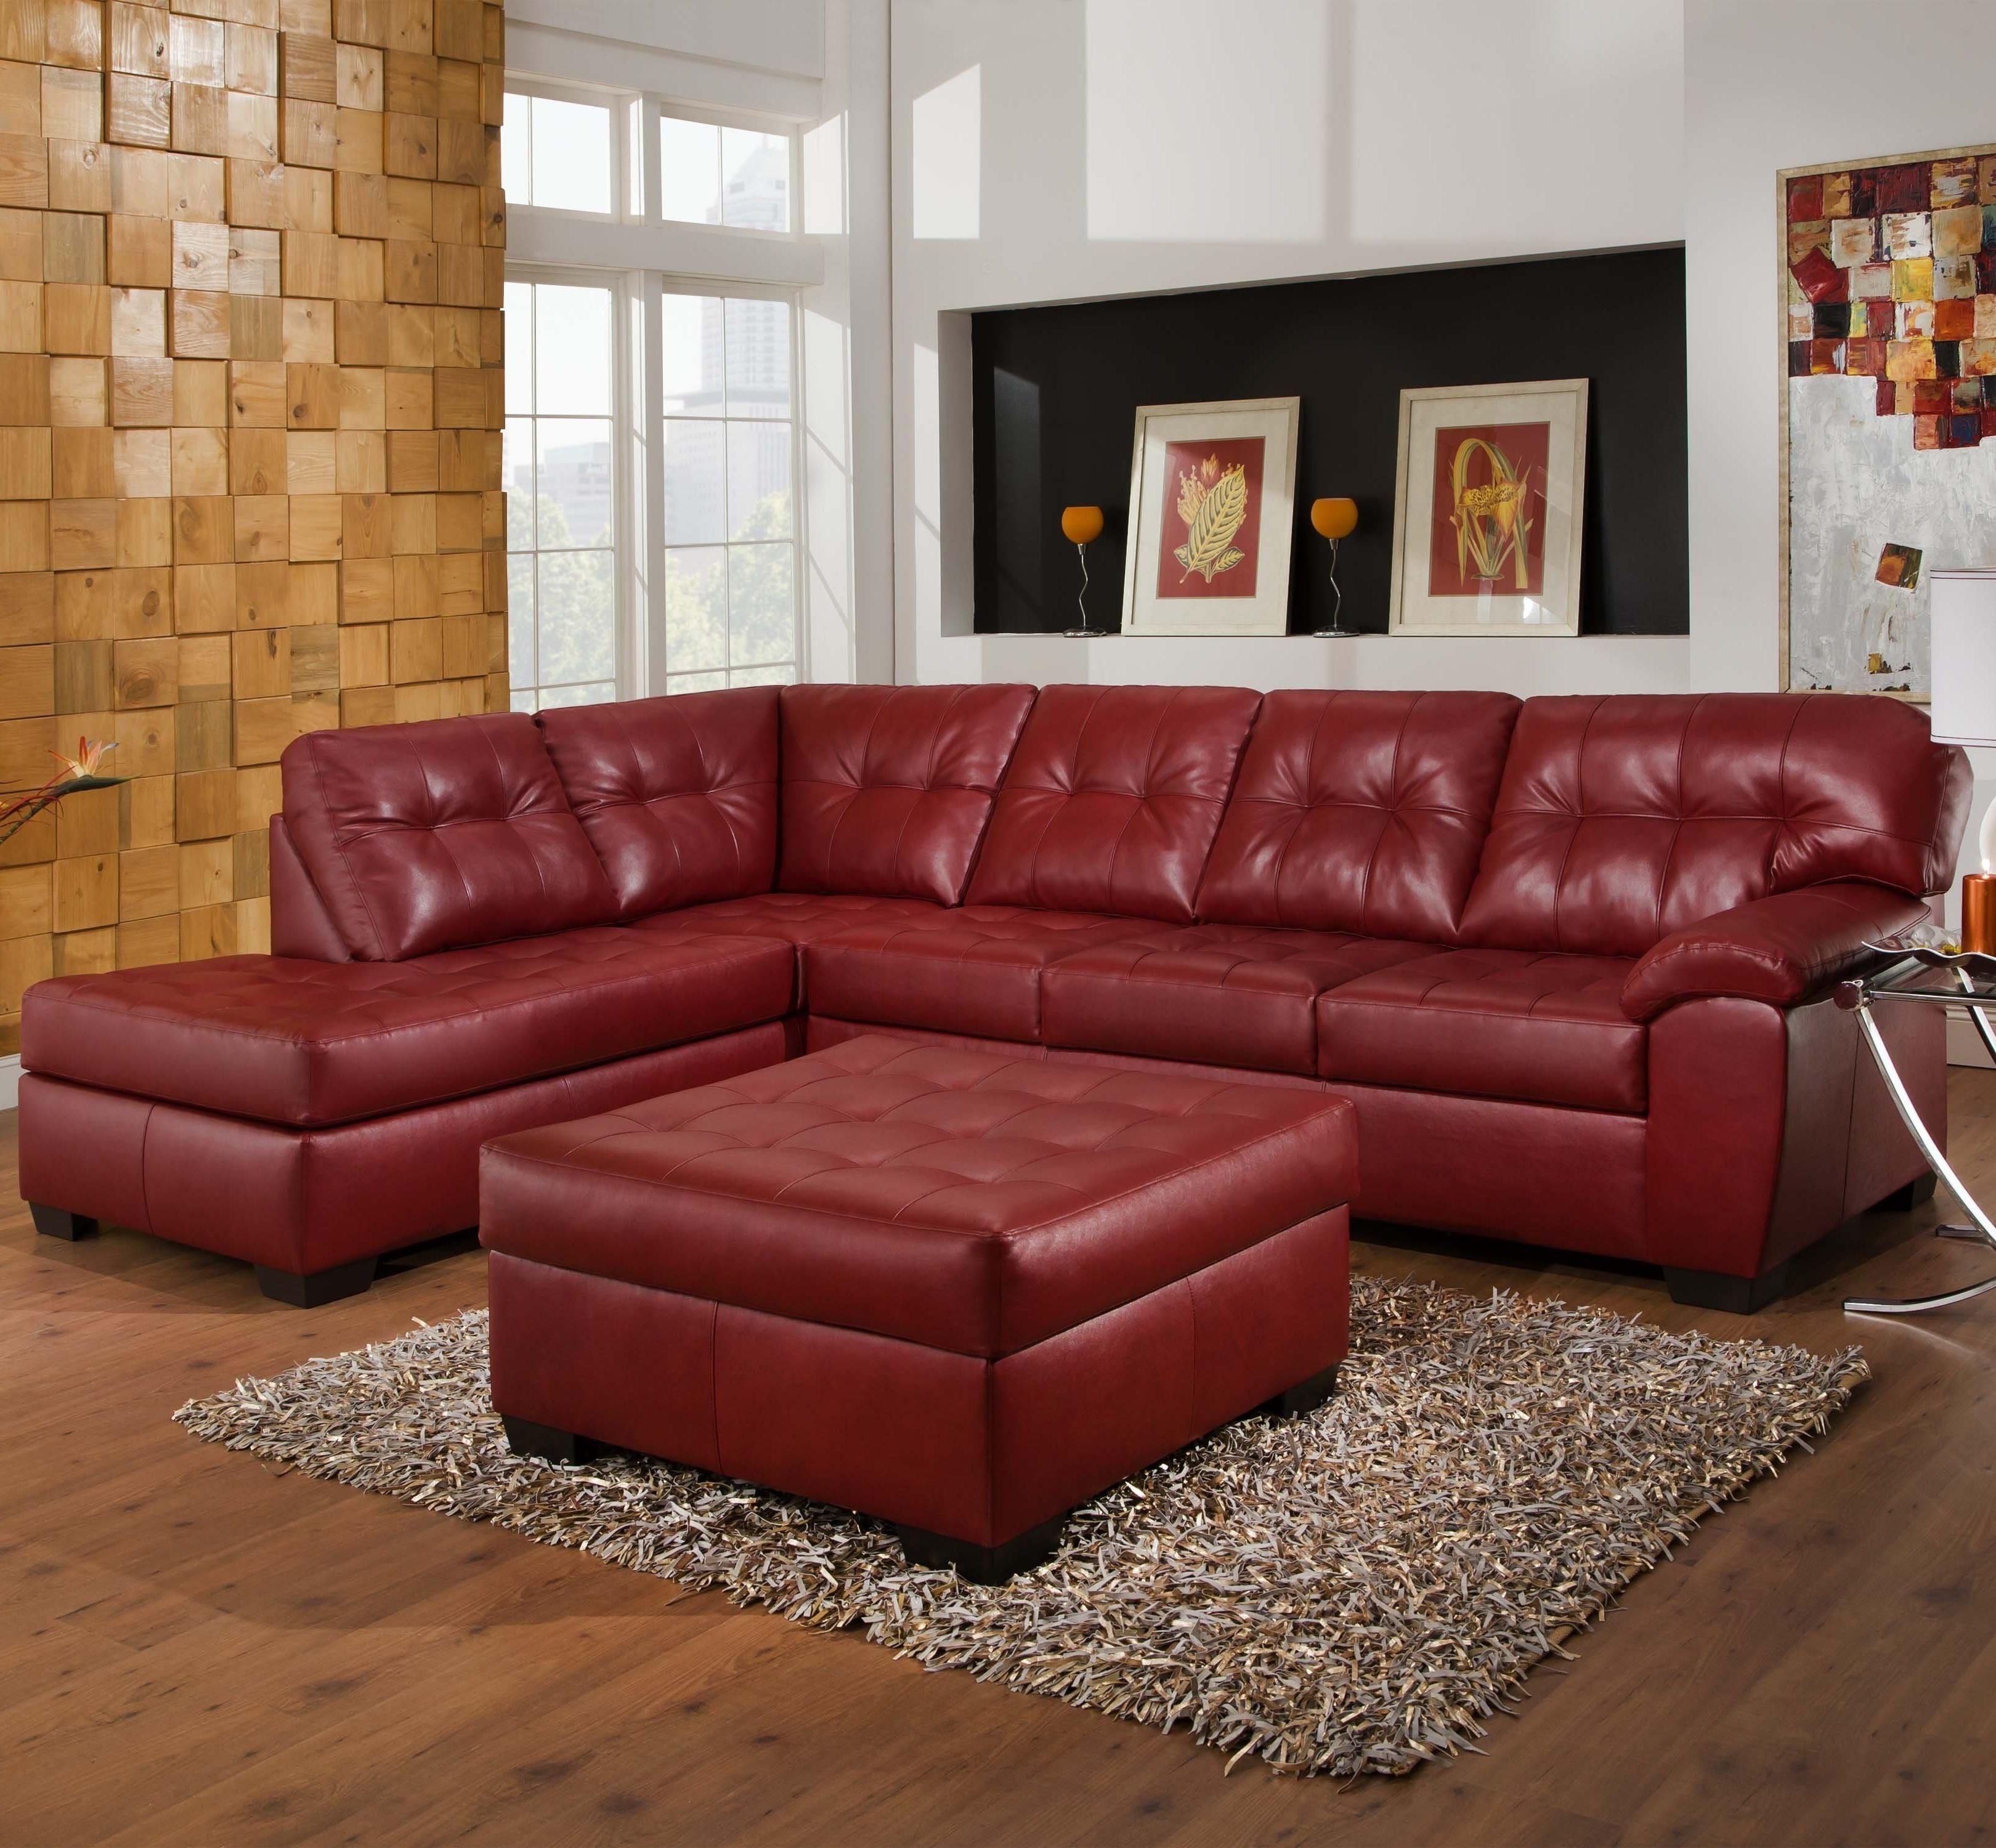 Most Up To Date Memphis Sectional Sofas Within 9569 2 Piece Sectional With Tufted Seats & Backsimmons (View 13 of 15)